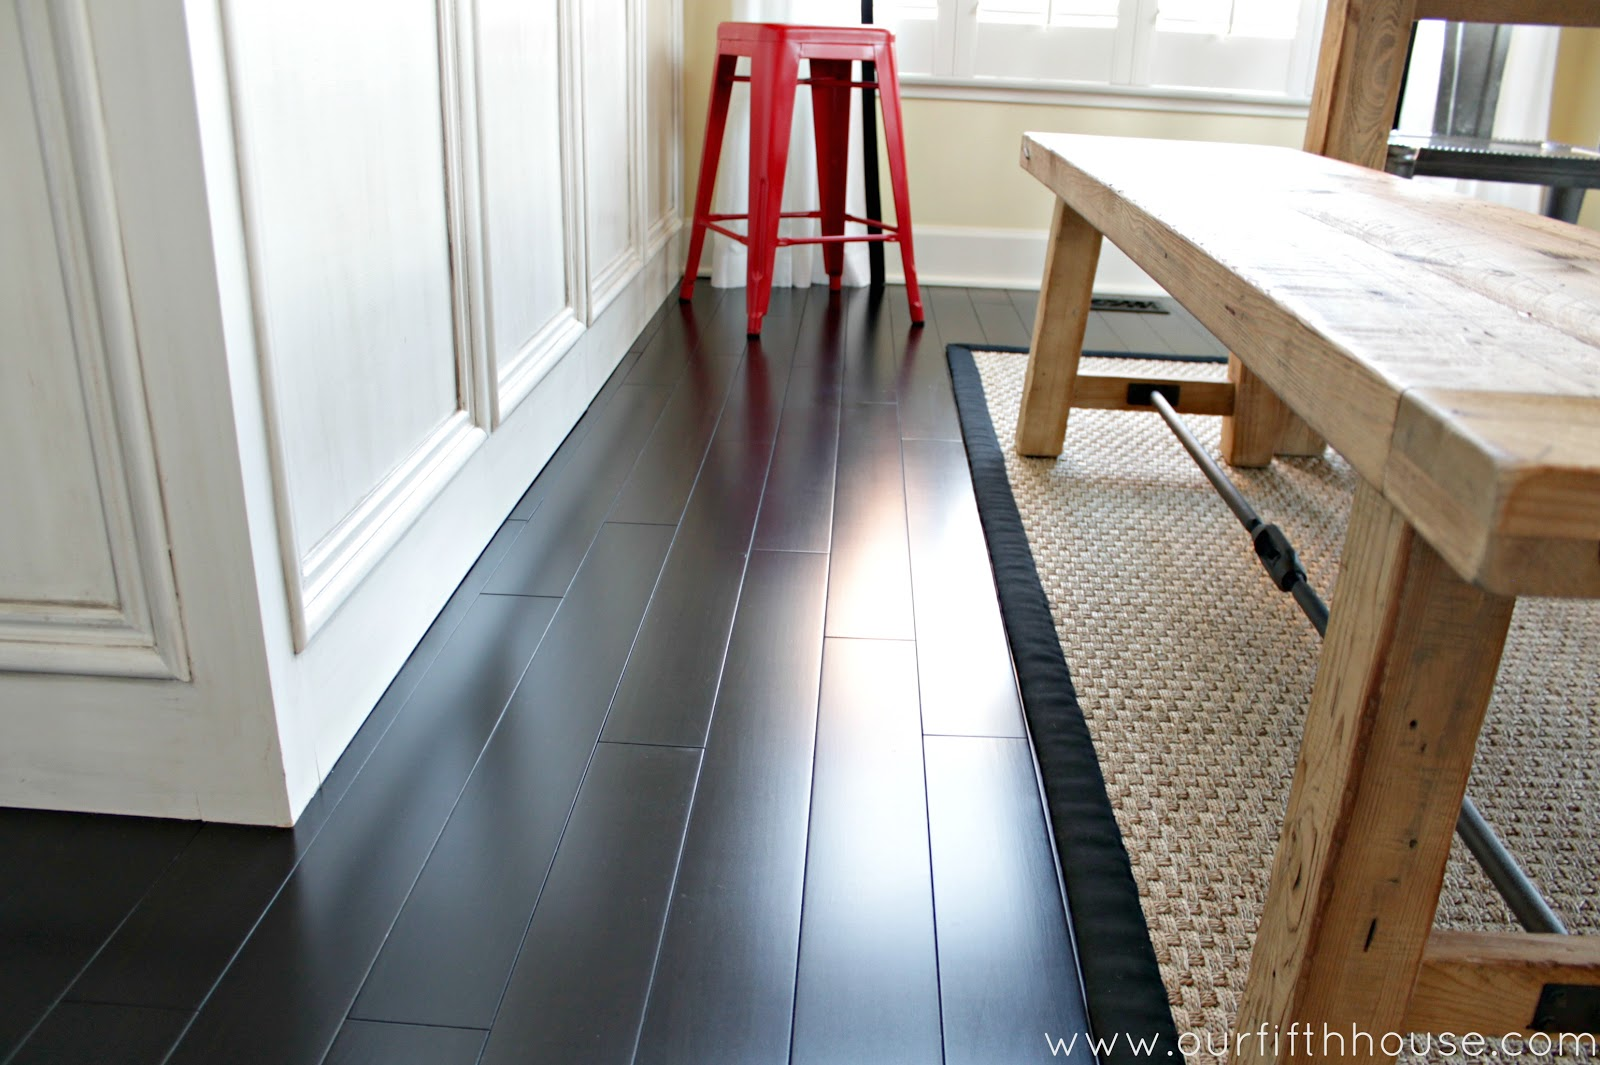 Quick Cleaning Tips for High Traffic Flooring